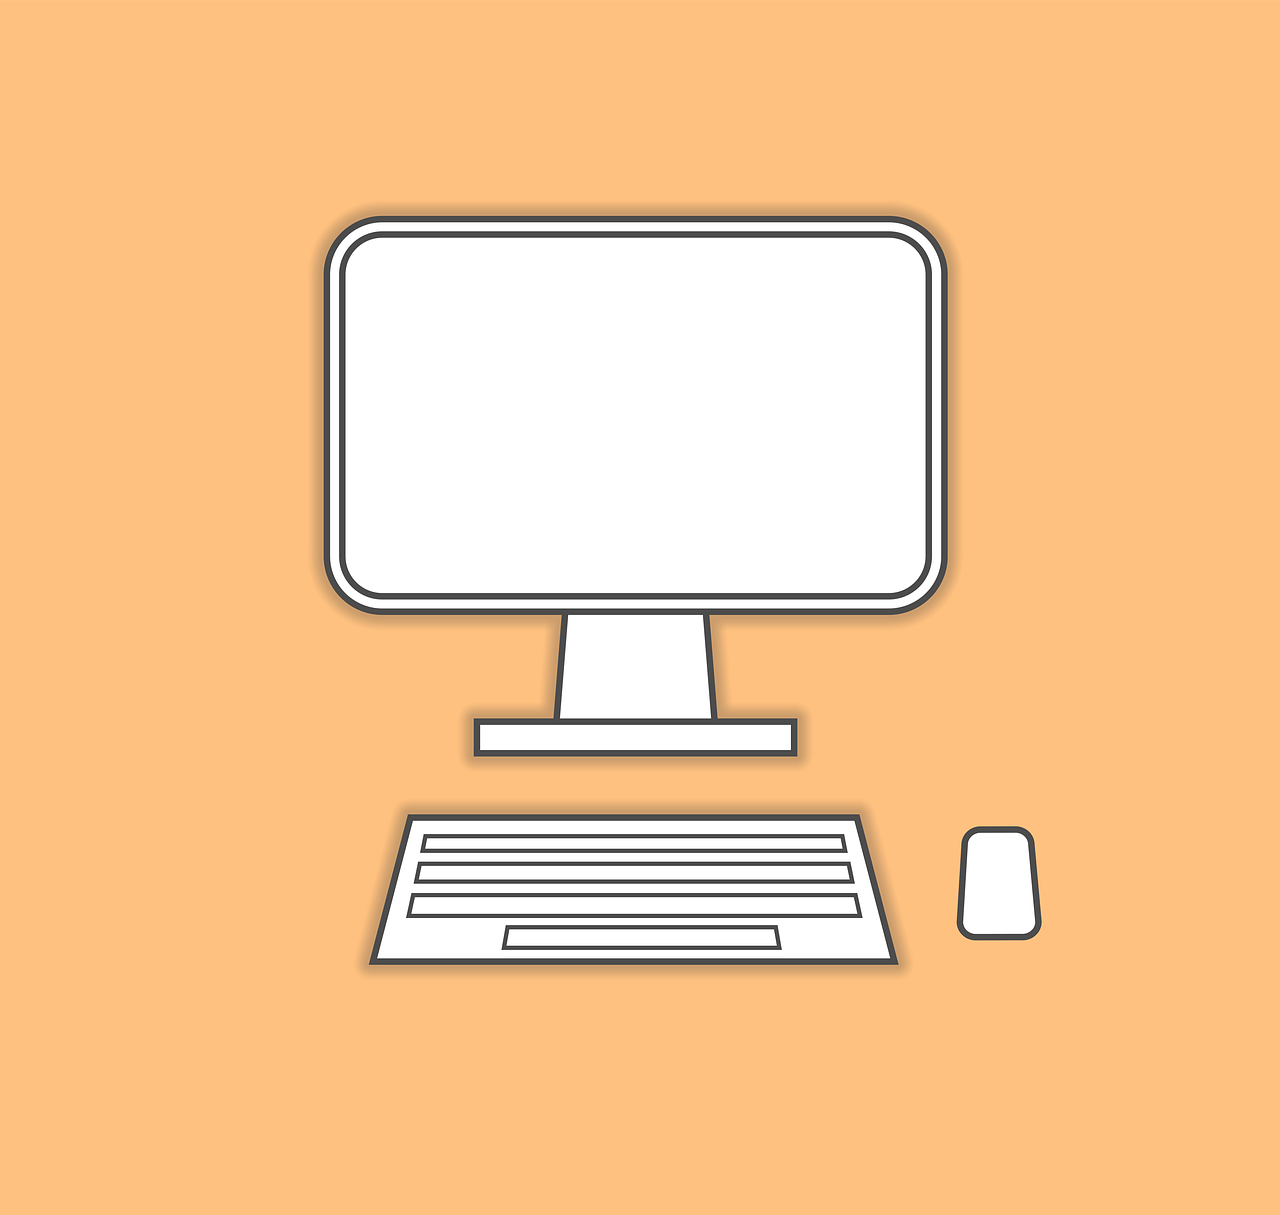 computer,monitor,keyboard,mouse,line drawing,flat,basic,line,white,modern,computer monitor,display,technology,screen,desktop,office,equipment,computer screen,business,digital,electronic,work,blank,tech,device,free pictures, free photos, free images, royalty free, free illustrations